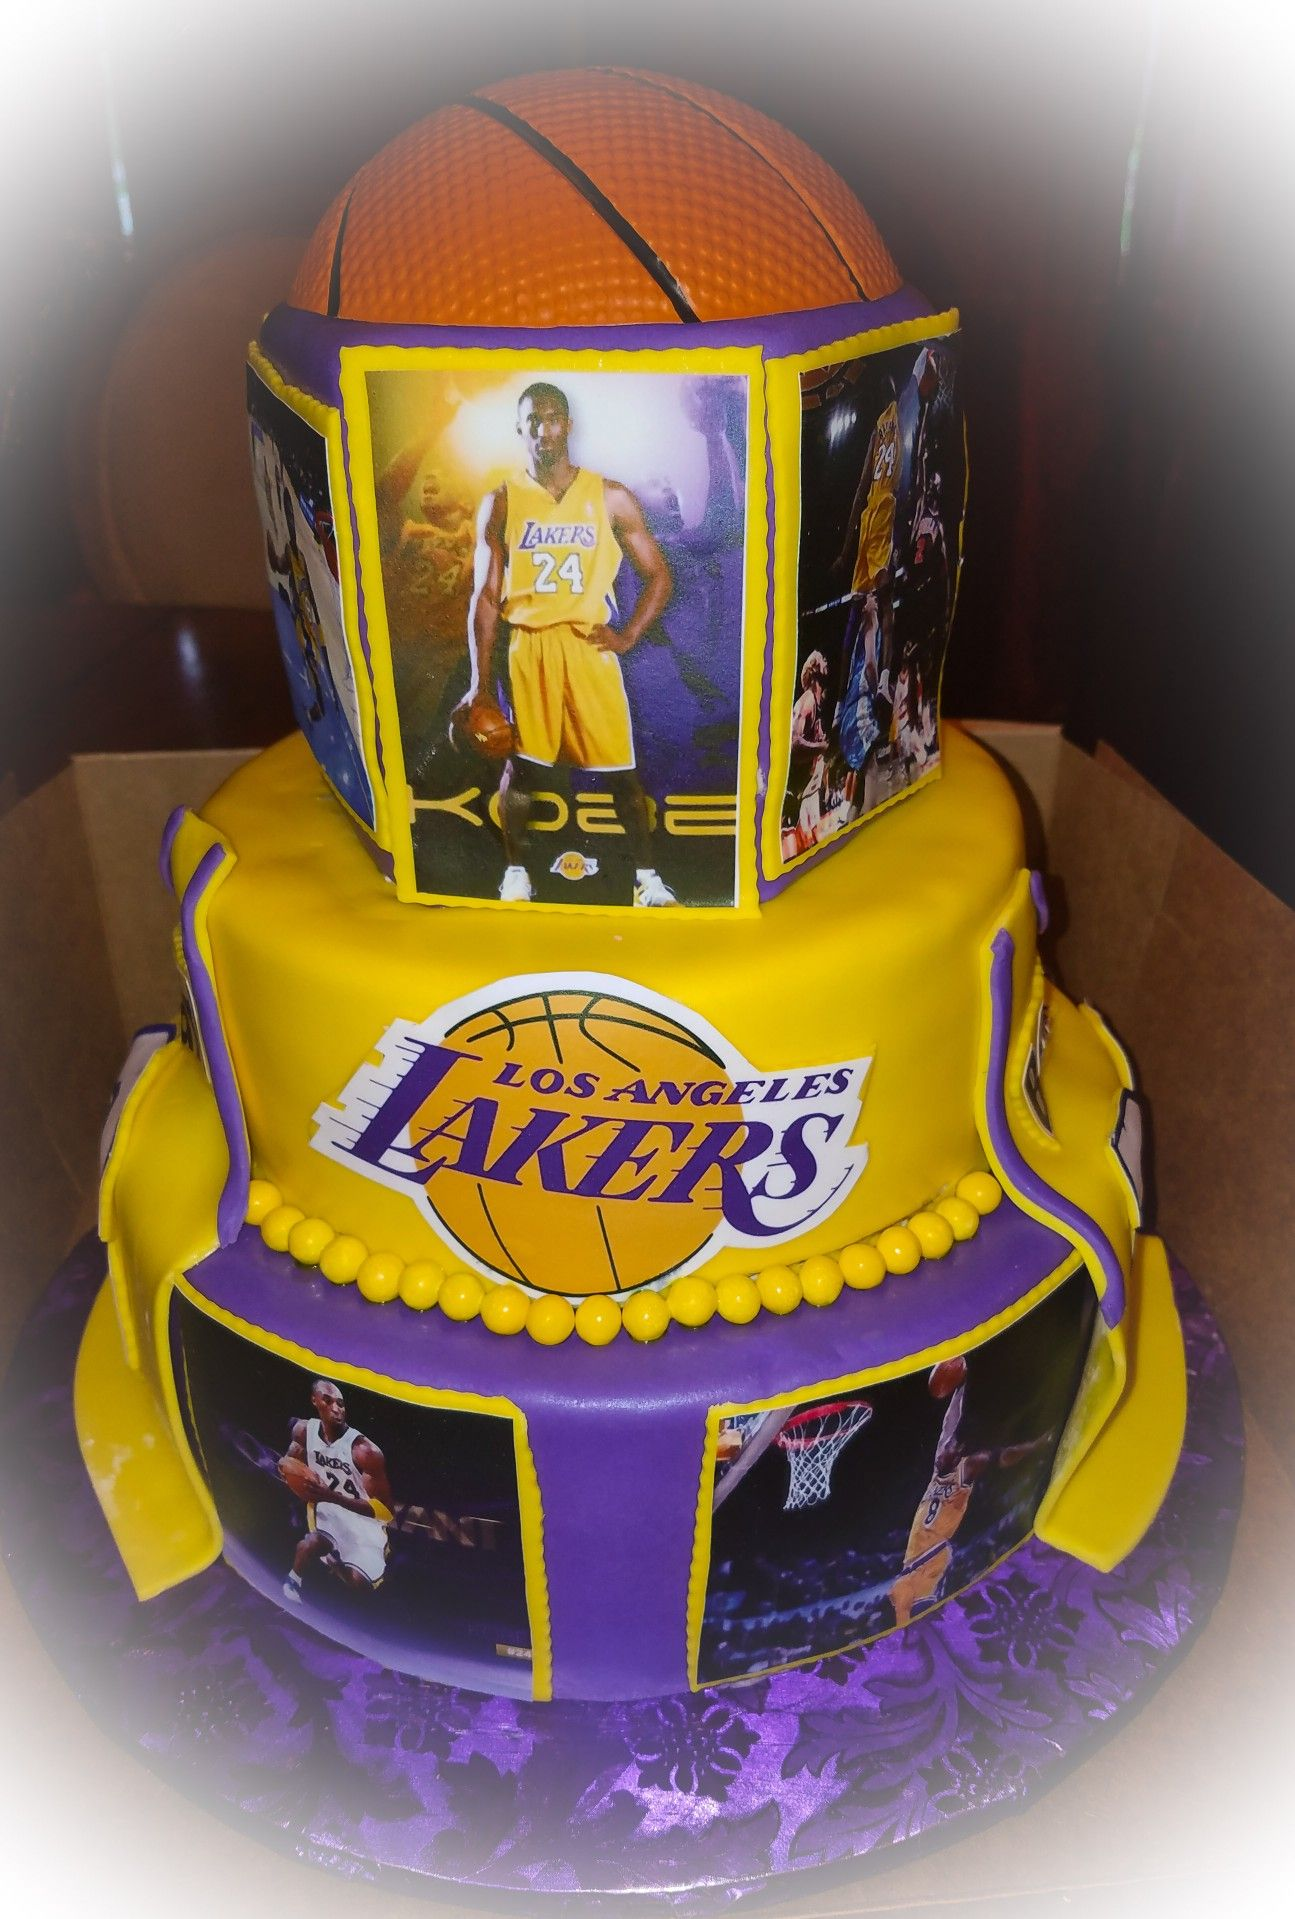 Groovy Kobe Lakers Cake Birthday Surprise Party Basketball Theme Funny Birthday Cards Online Sheoxdamsfinfo